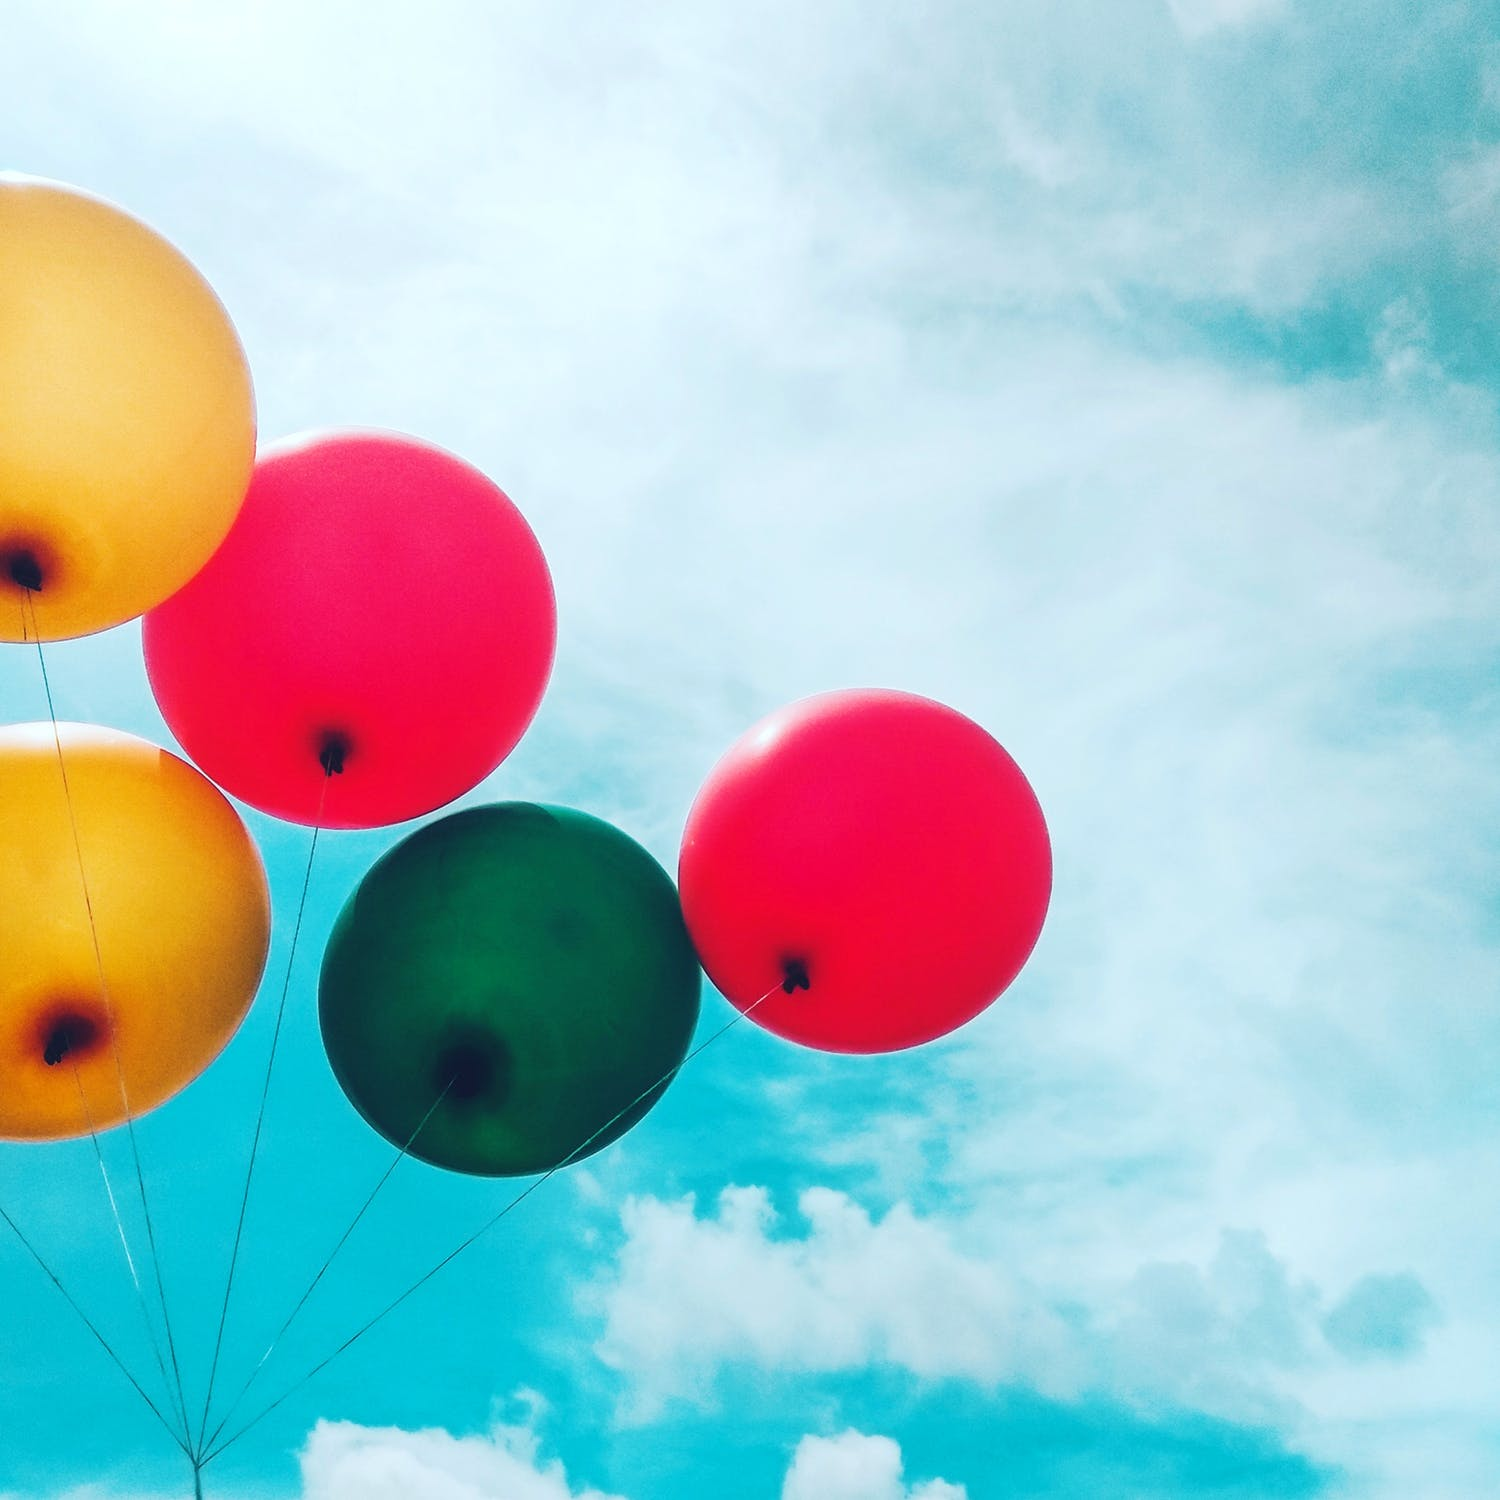 Yellow, green and red balloons below the blue sky.